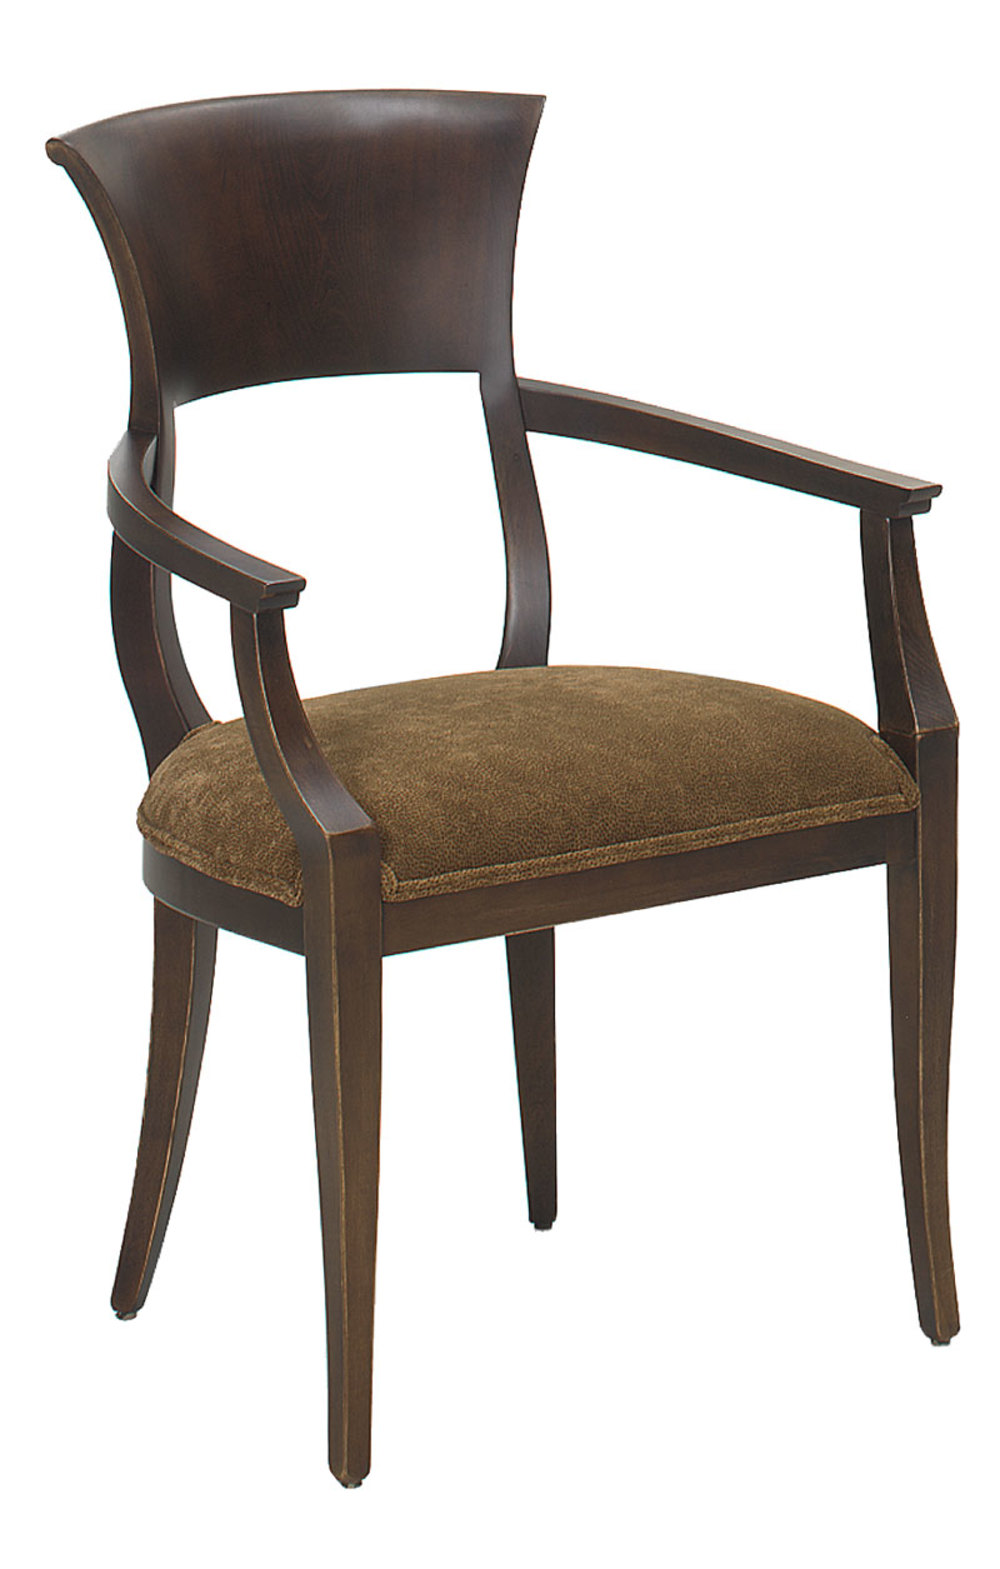 Parker Southern - Cameron Chair